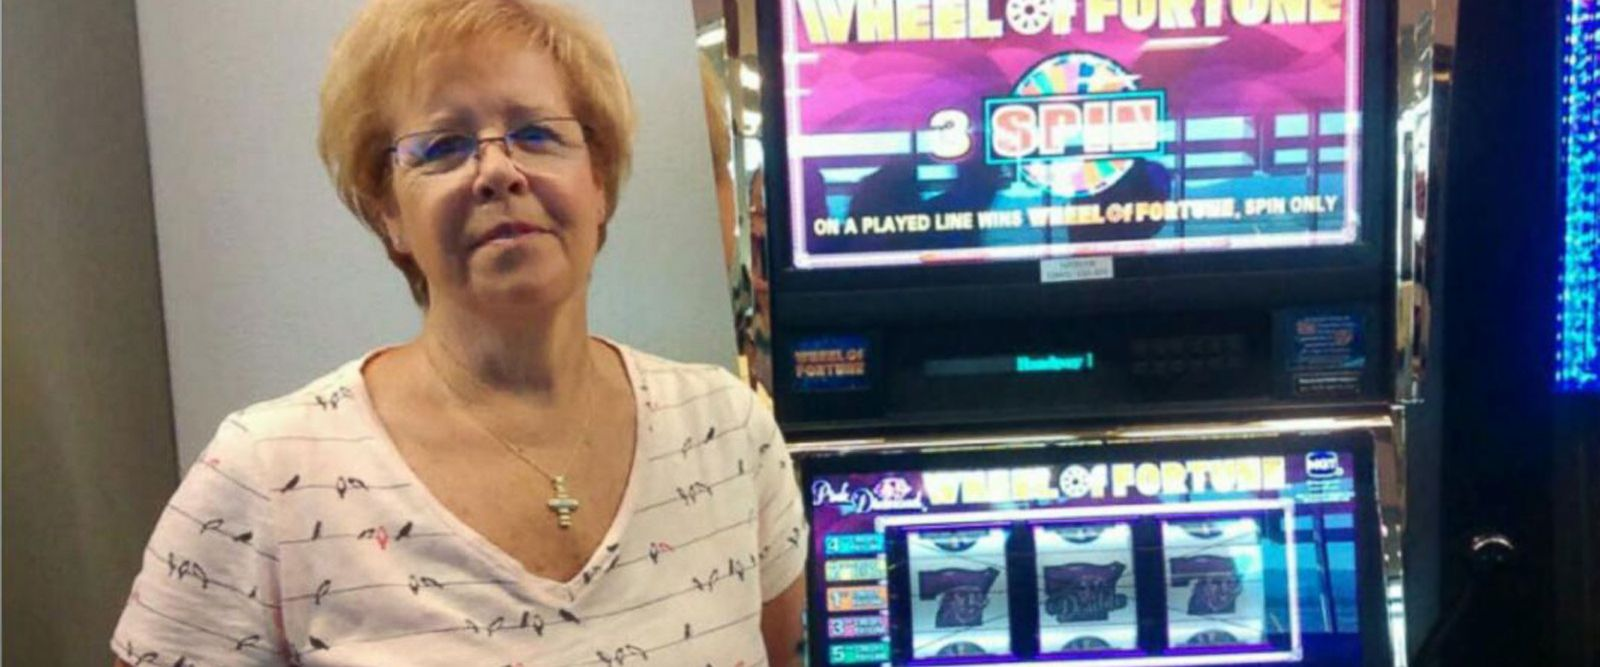 VIDEO: Woman wins $1.6 million on Vegas airport slot machine